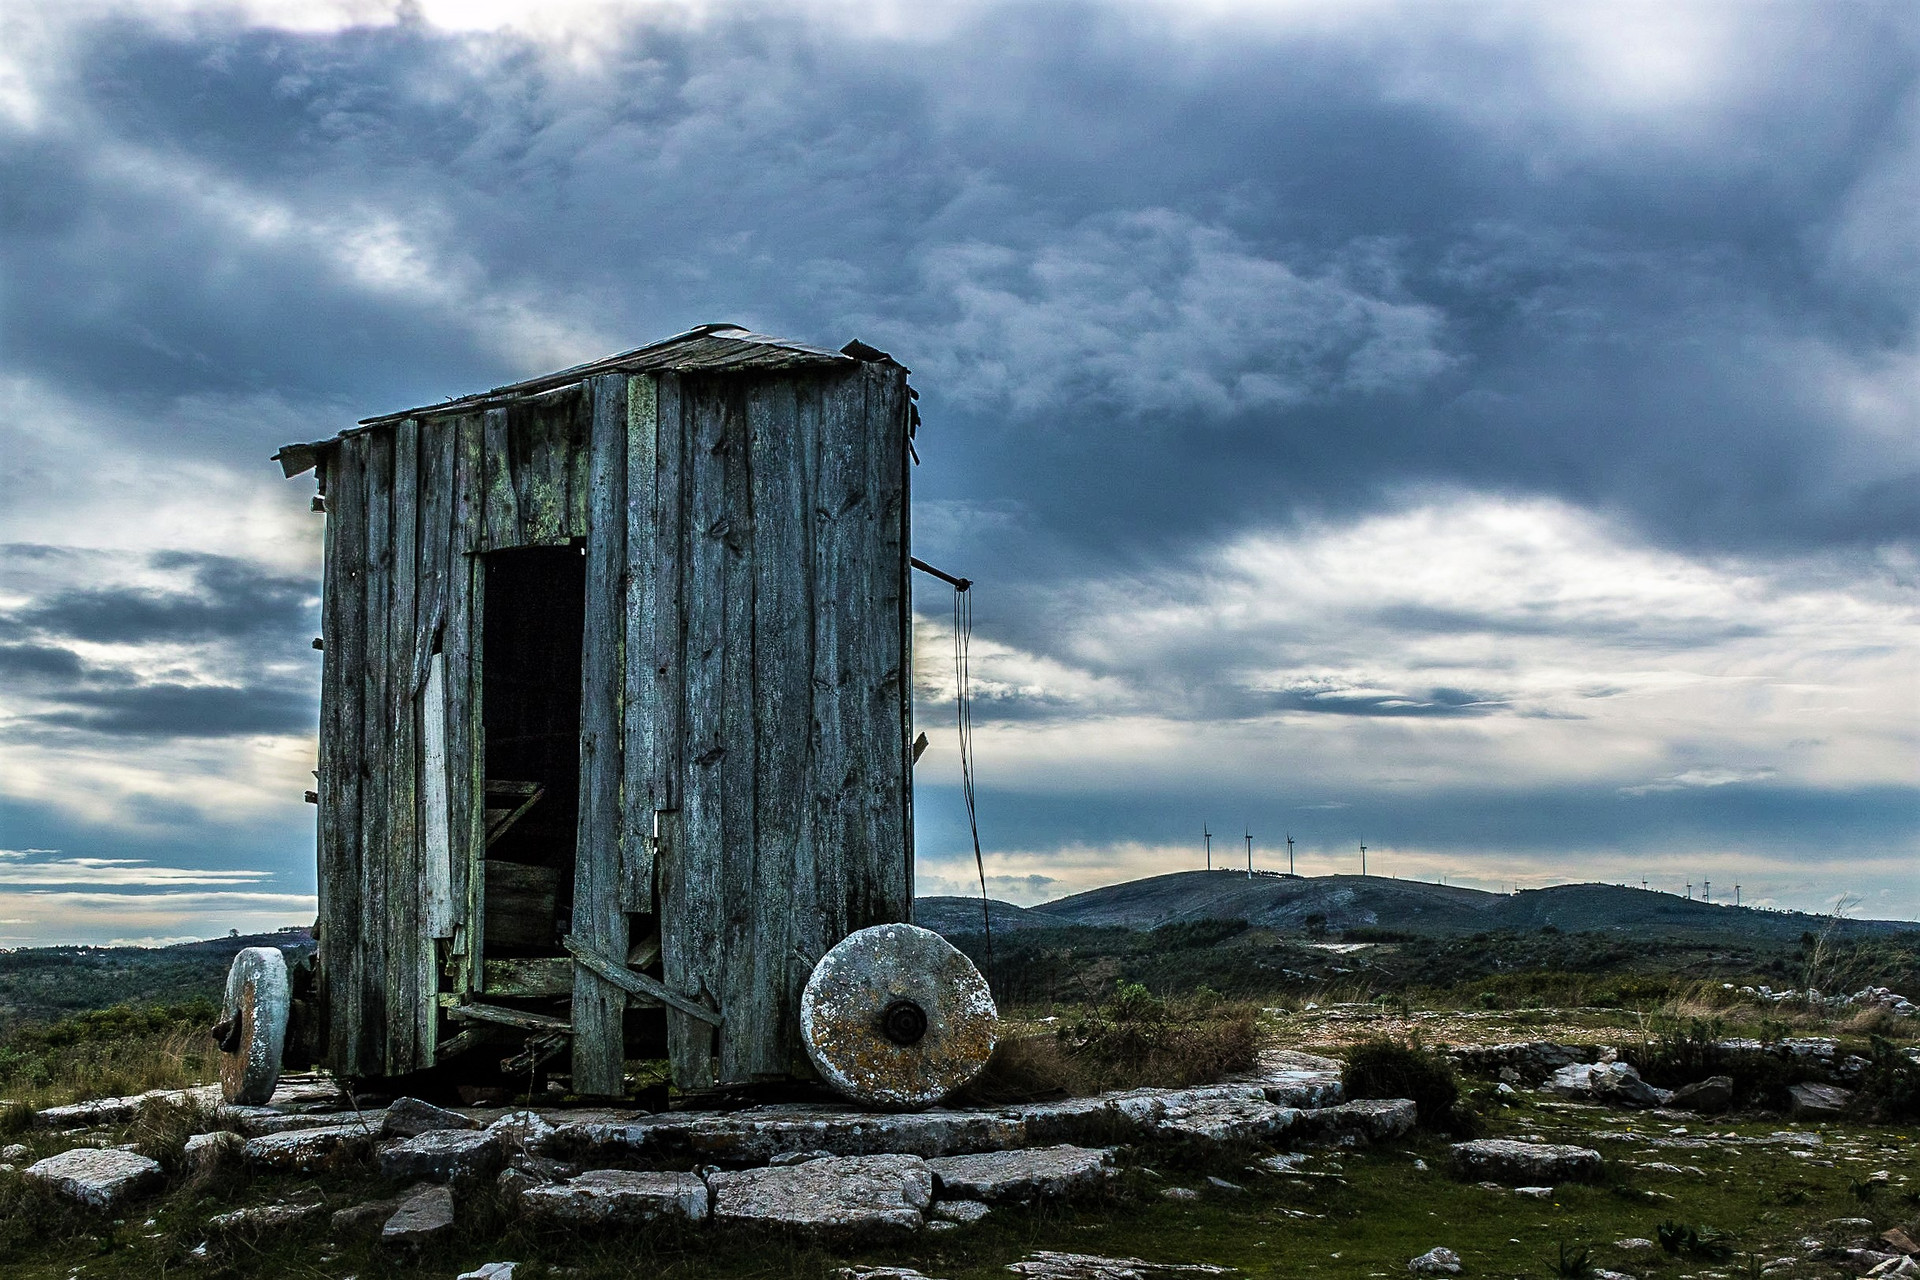 Abandoned windmill at Serra de Janeanes